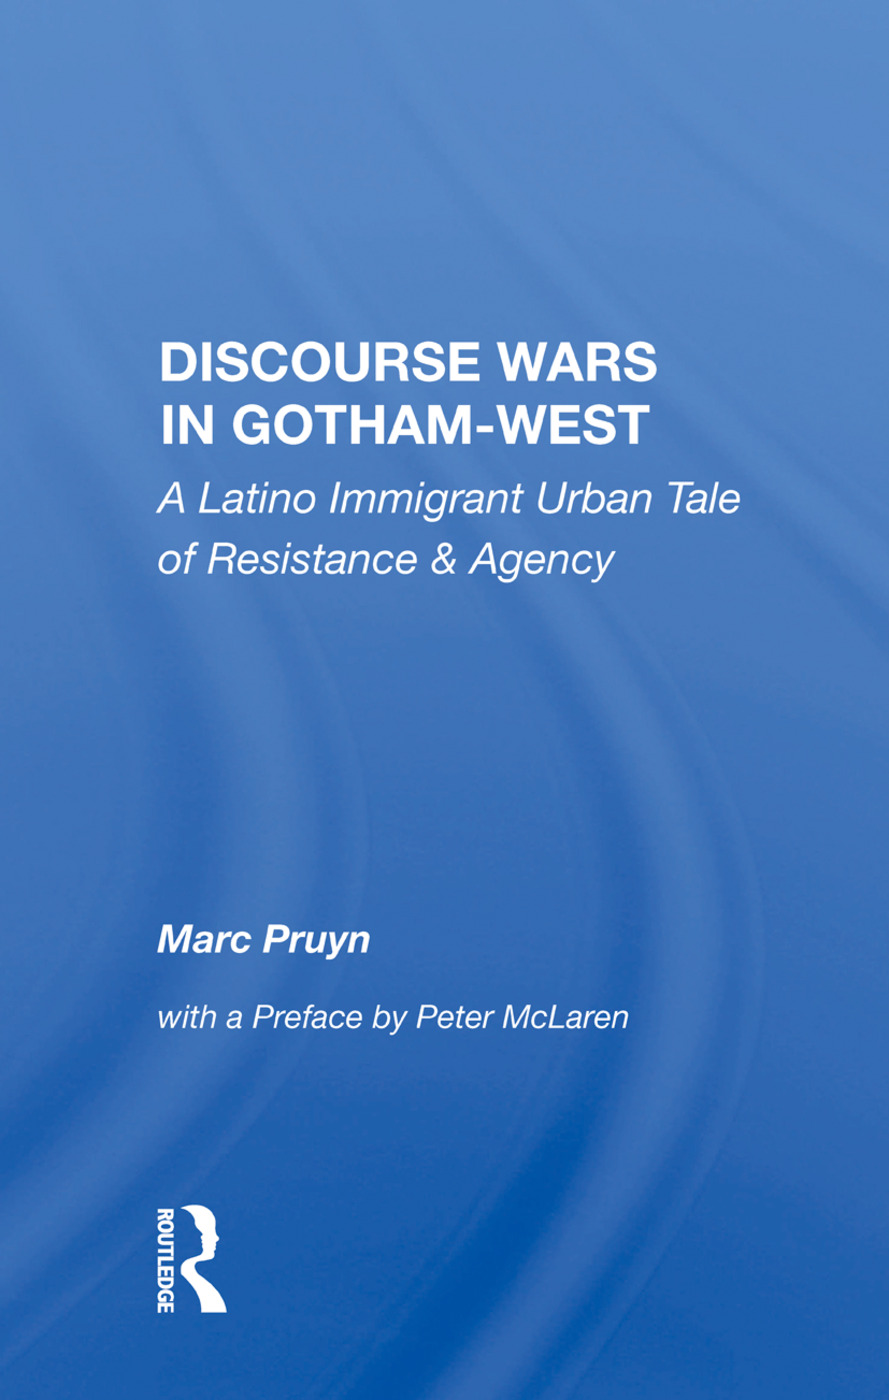 Discourse Wars In Gotham-west: A Latino Immigrant Urban Tale Of Resistance And Agency book cover